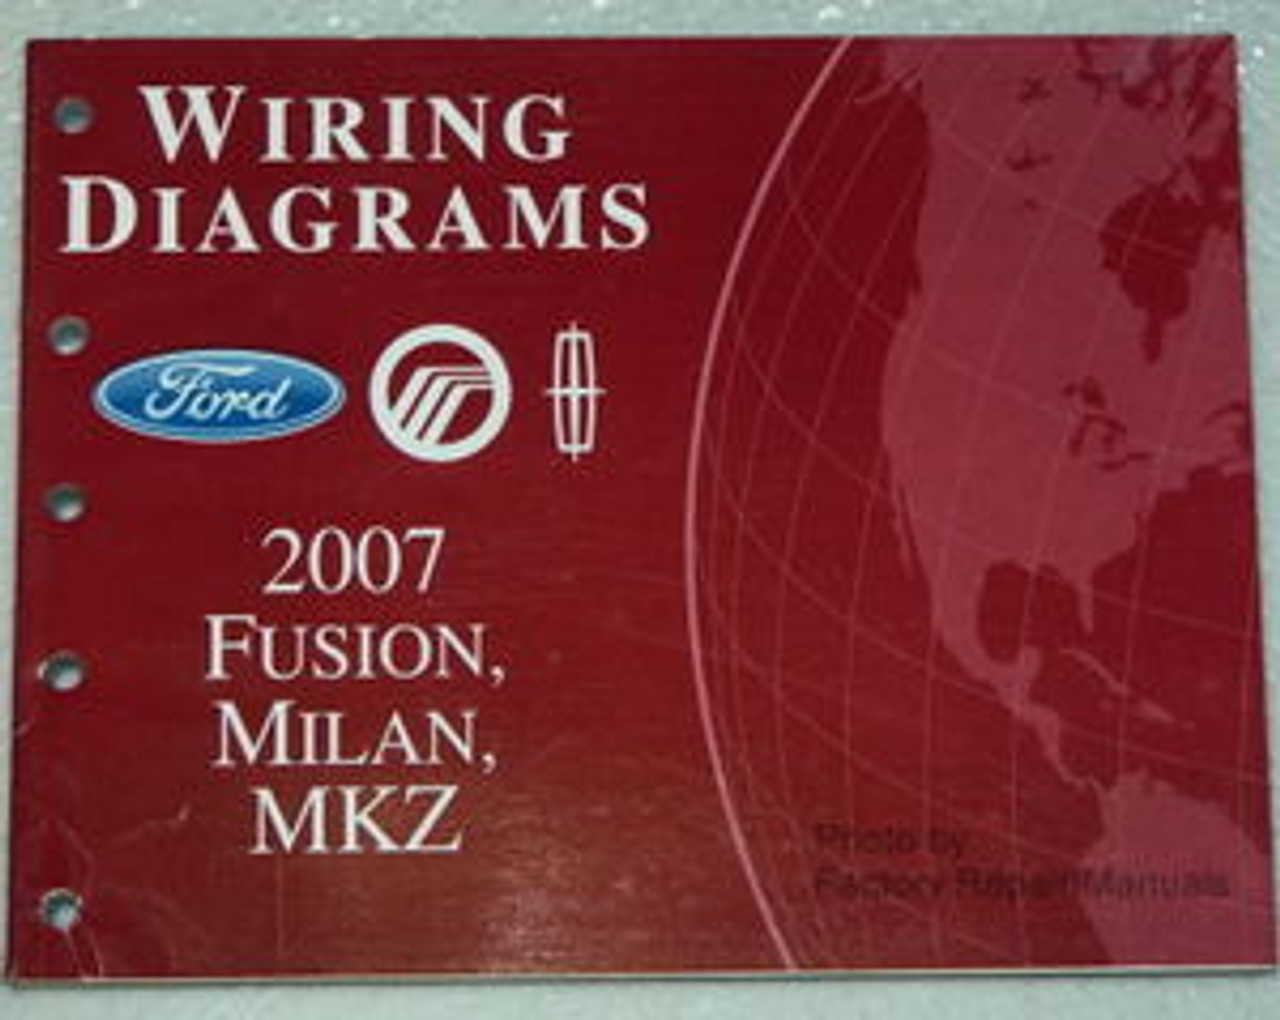 1951 mercury wiring diagram 2007 ford fusion  mercury milan  lincoln mkz electrical wiring  2007 ford fusion  mercury milan